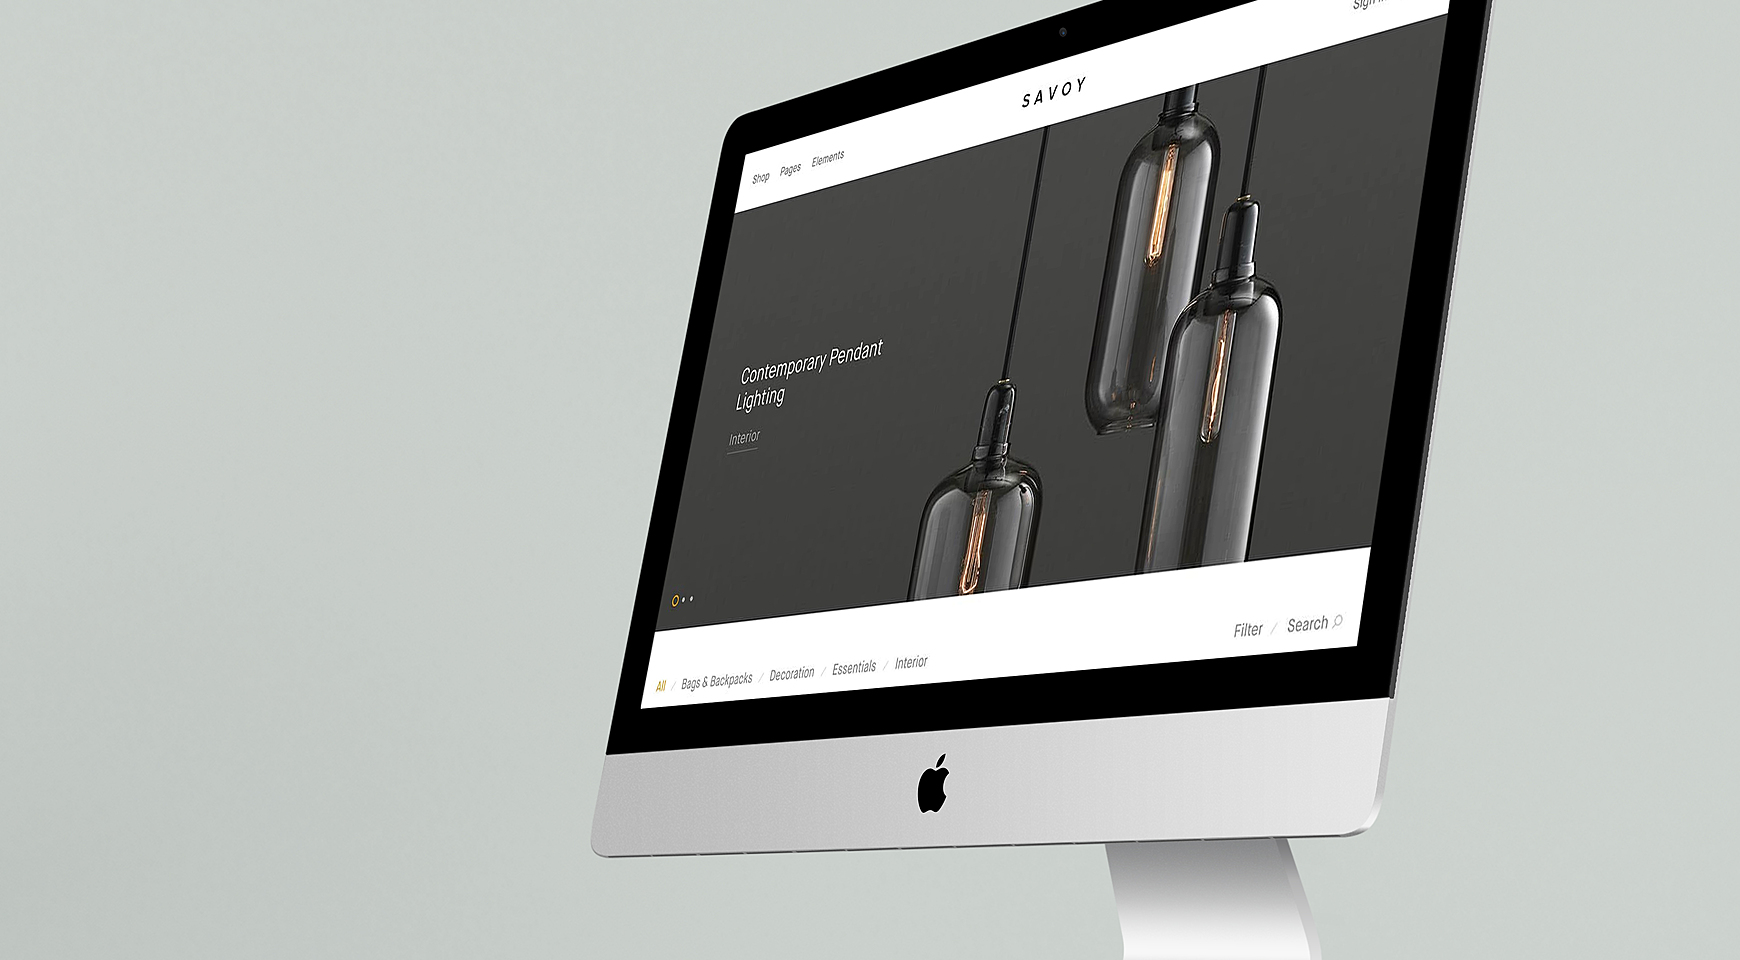 An ecommerce website opened on iMac